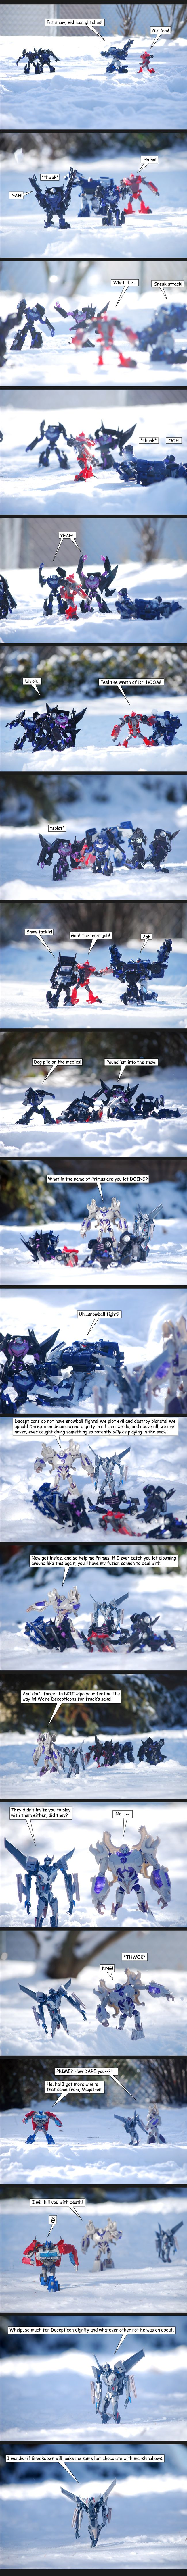 Snowball Fight by The-Starhorse.deviantart.com - This girl is so great with all her Transformers figures! :D